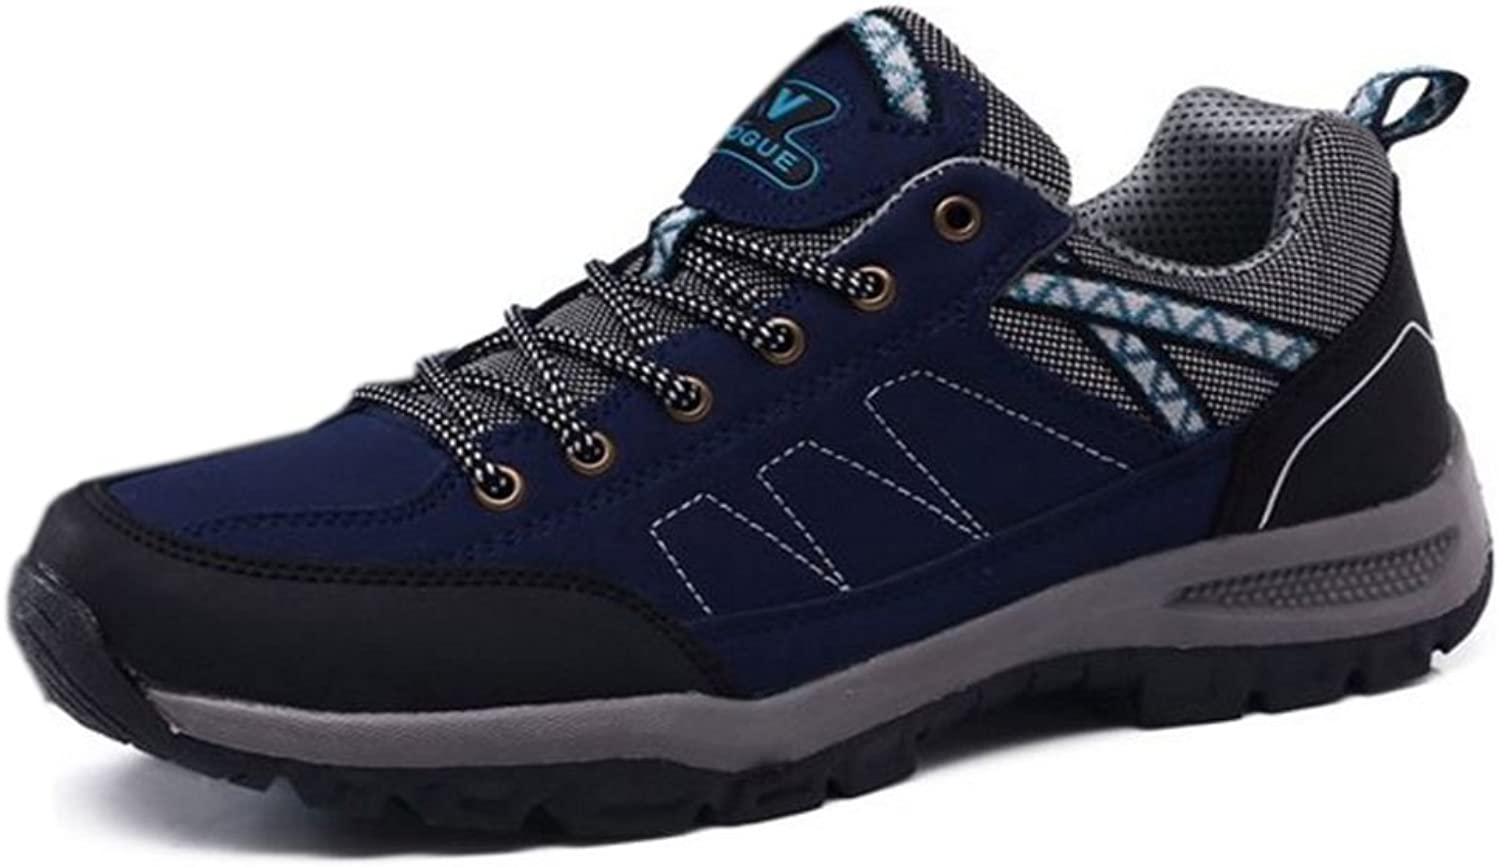 KemeKiss Men's Outdoor shoes lace Up Hiking Footwear